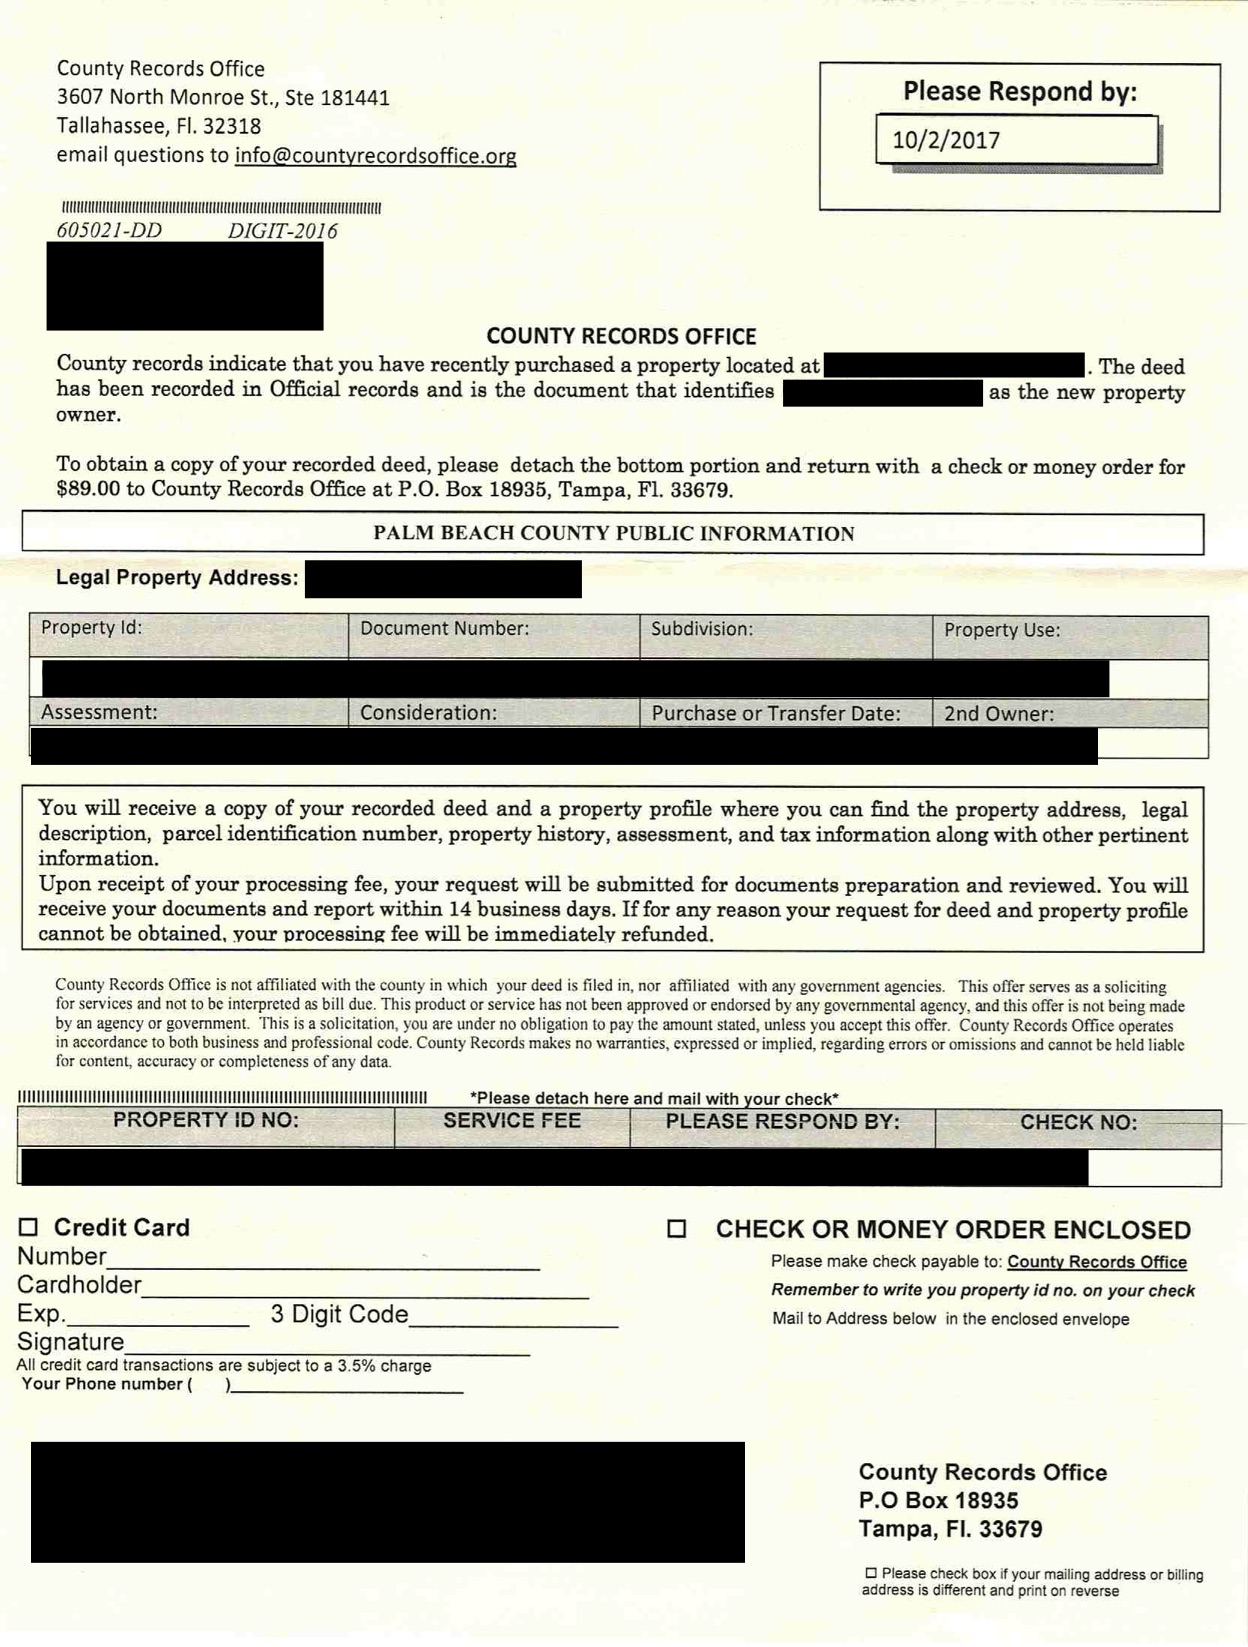 palm beach letter scam beware of deed scam letters from county records 13832 | FakeDeedTampa